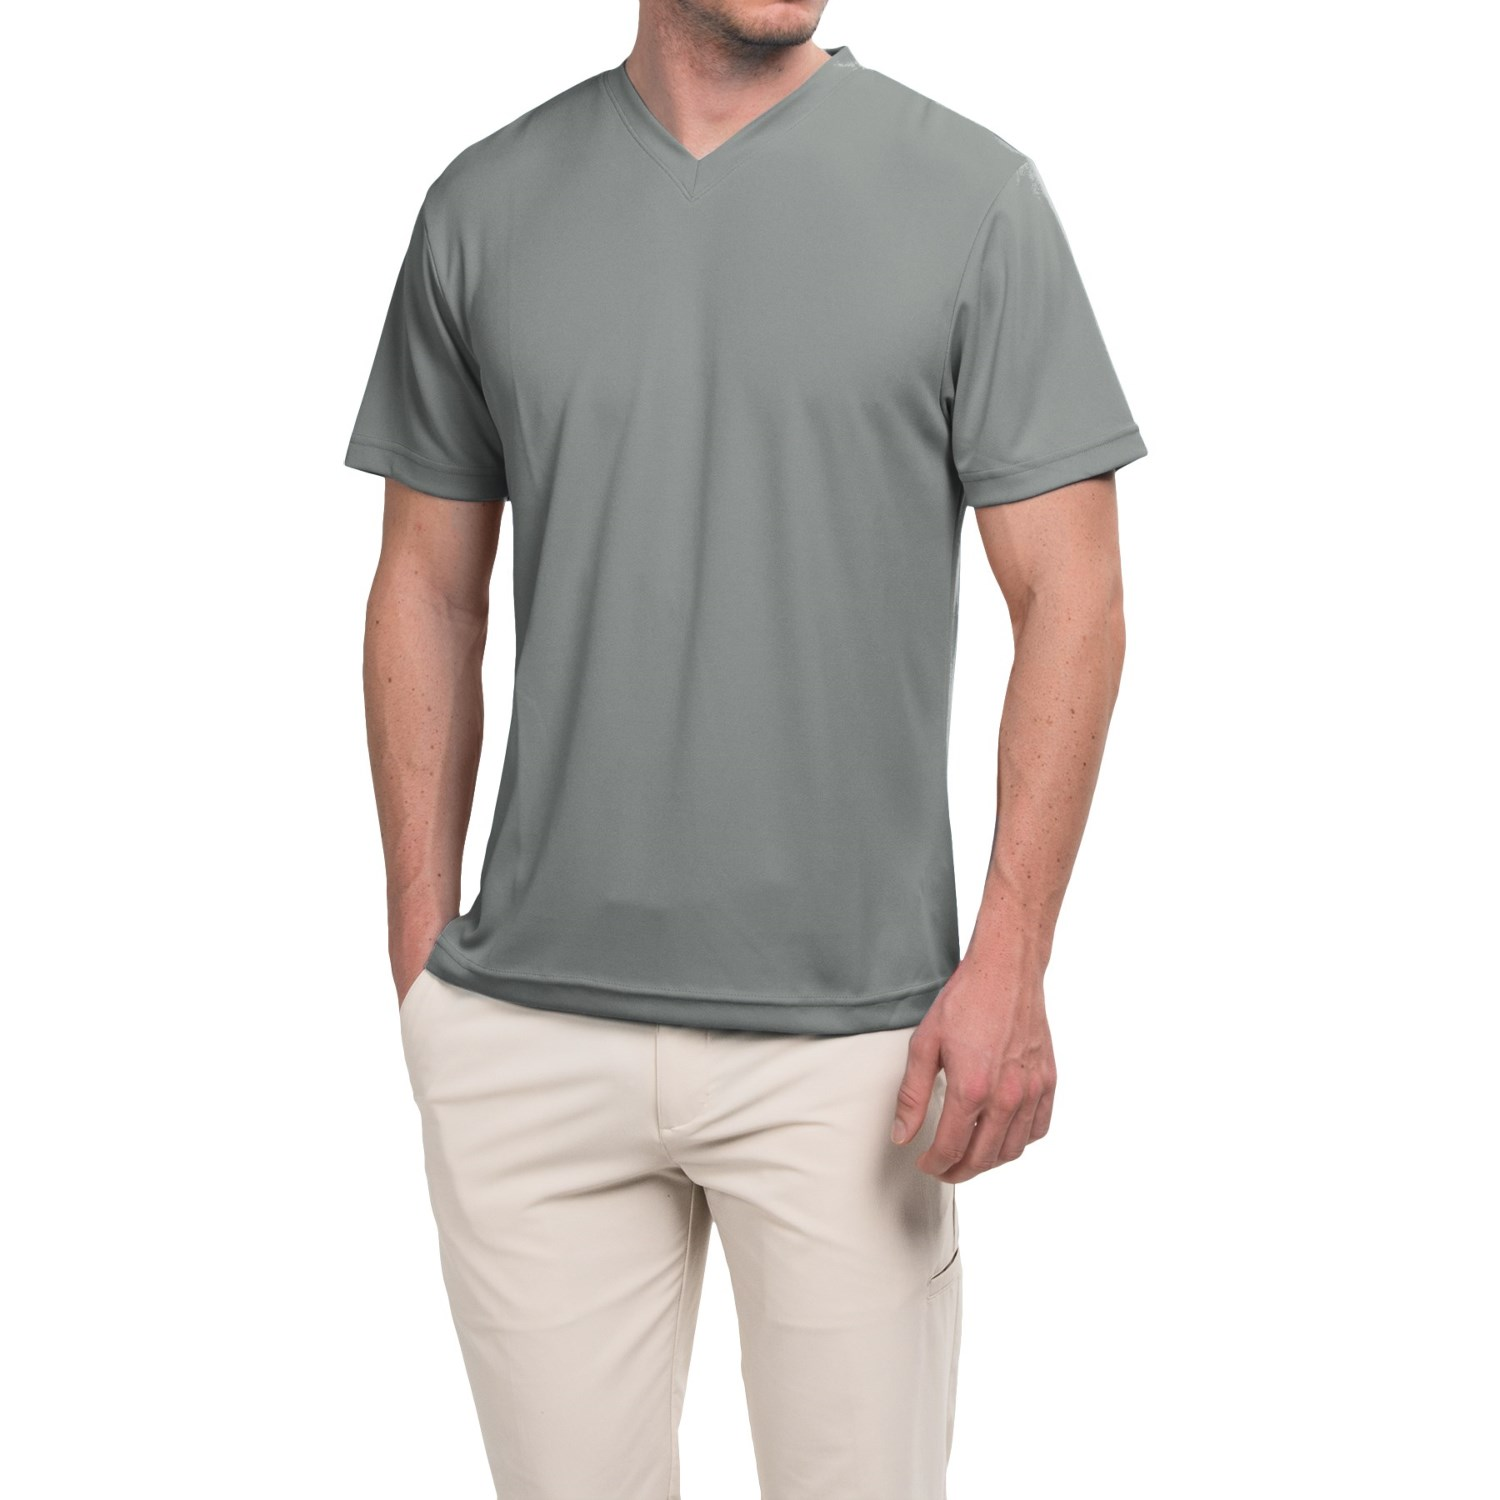 Ben hogan golf v neck shirt short sleeve for men in grey